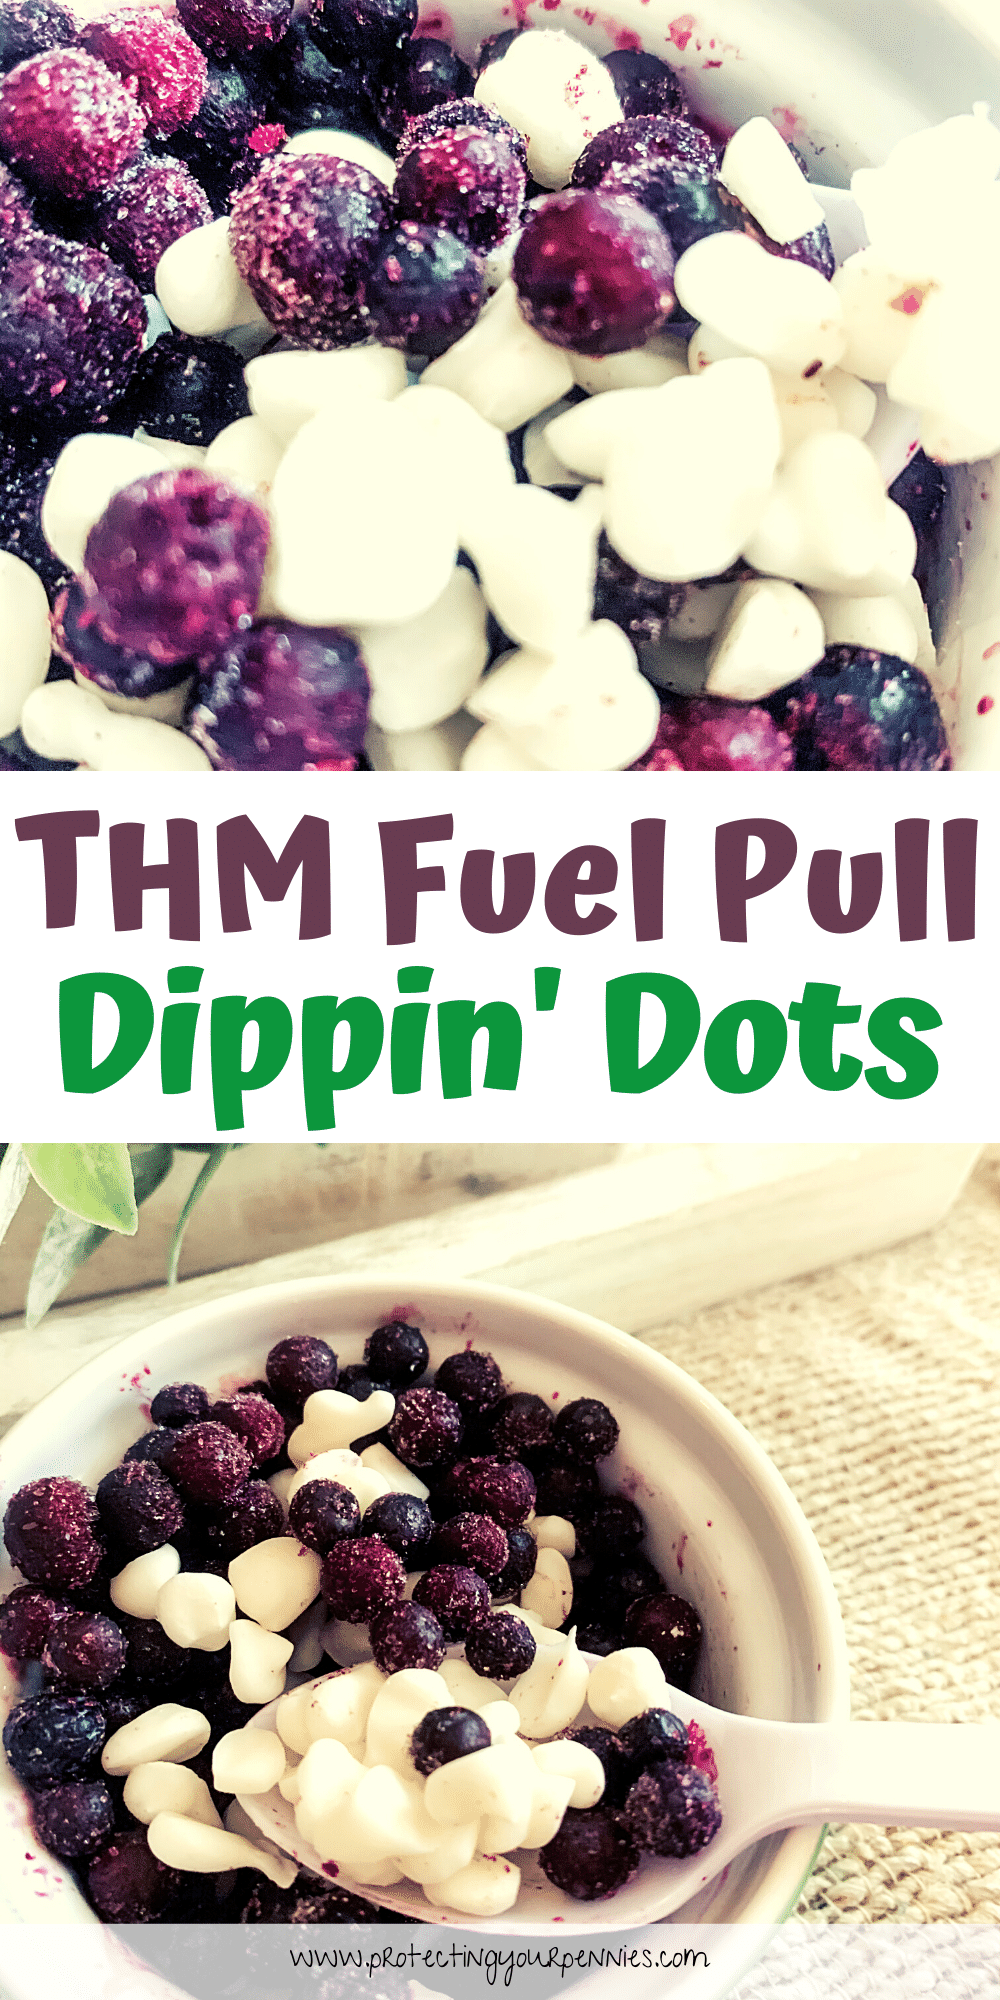 THM Fuel Pull Dippin Dots